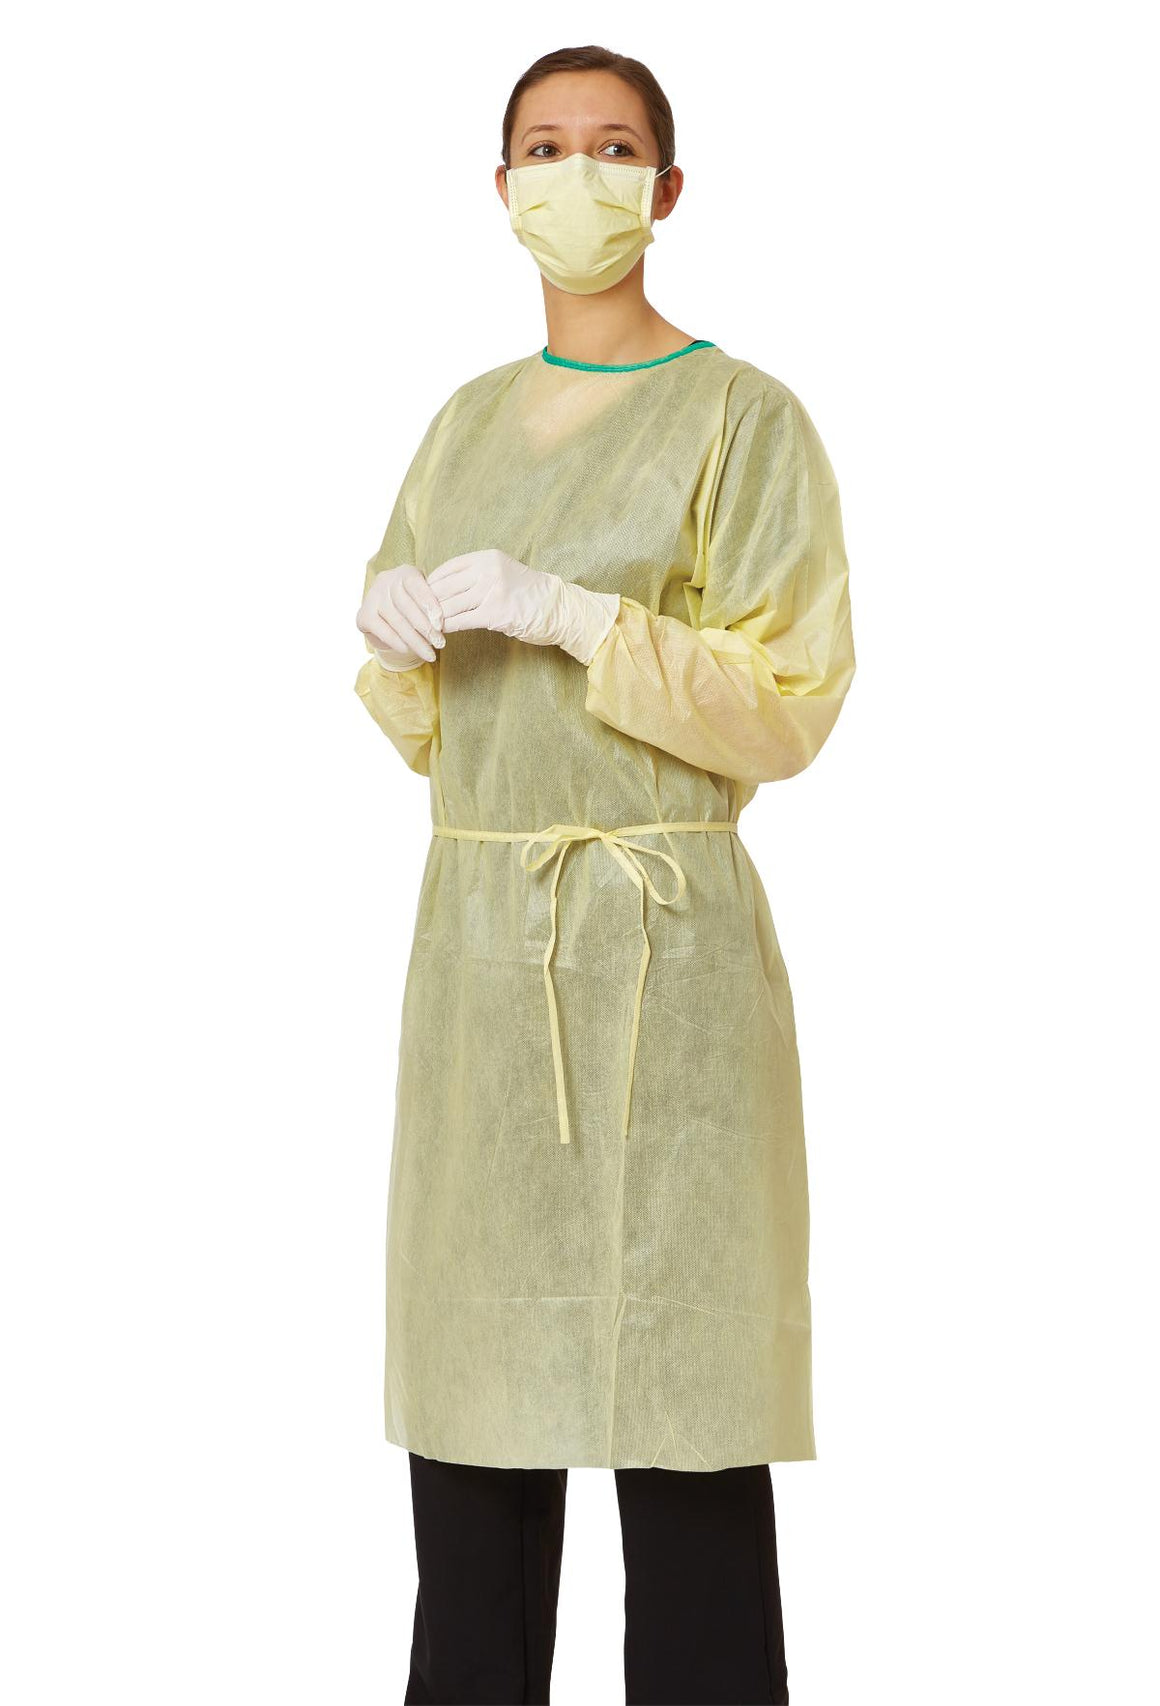 AAMI Level 2 Isolation Gowns,Yellow,Regular/Large, Case of 100